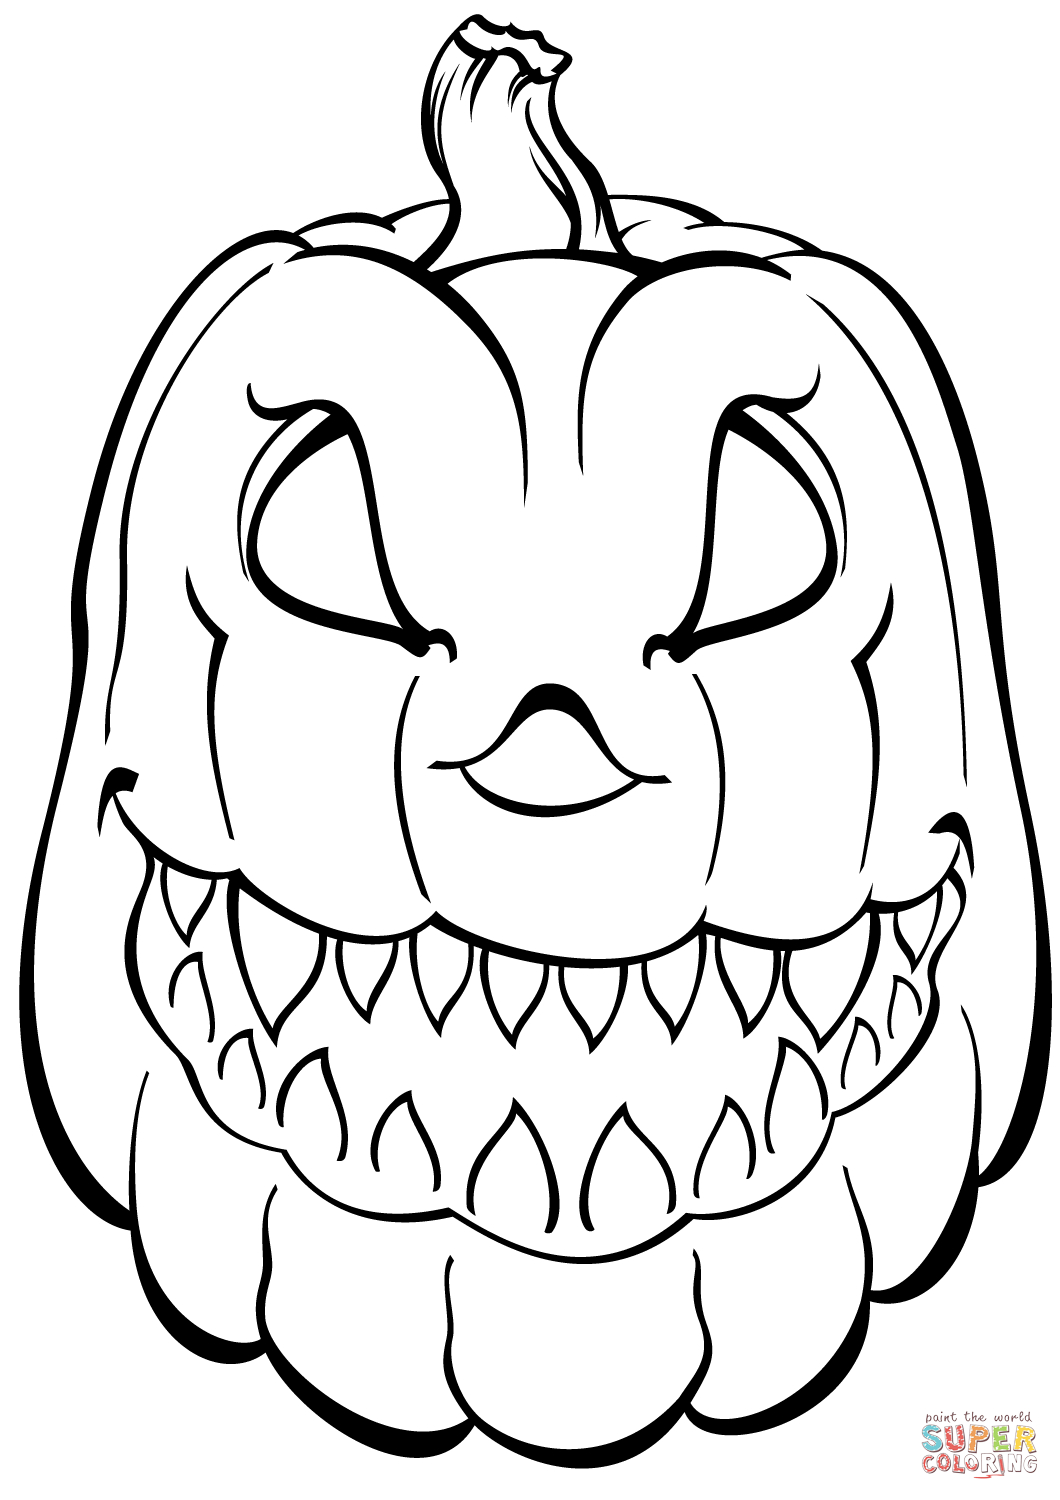 Printable Pumpkin Coloring Pages Scary Pumpkin Coloring Page Free Printable Coloring Pages